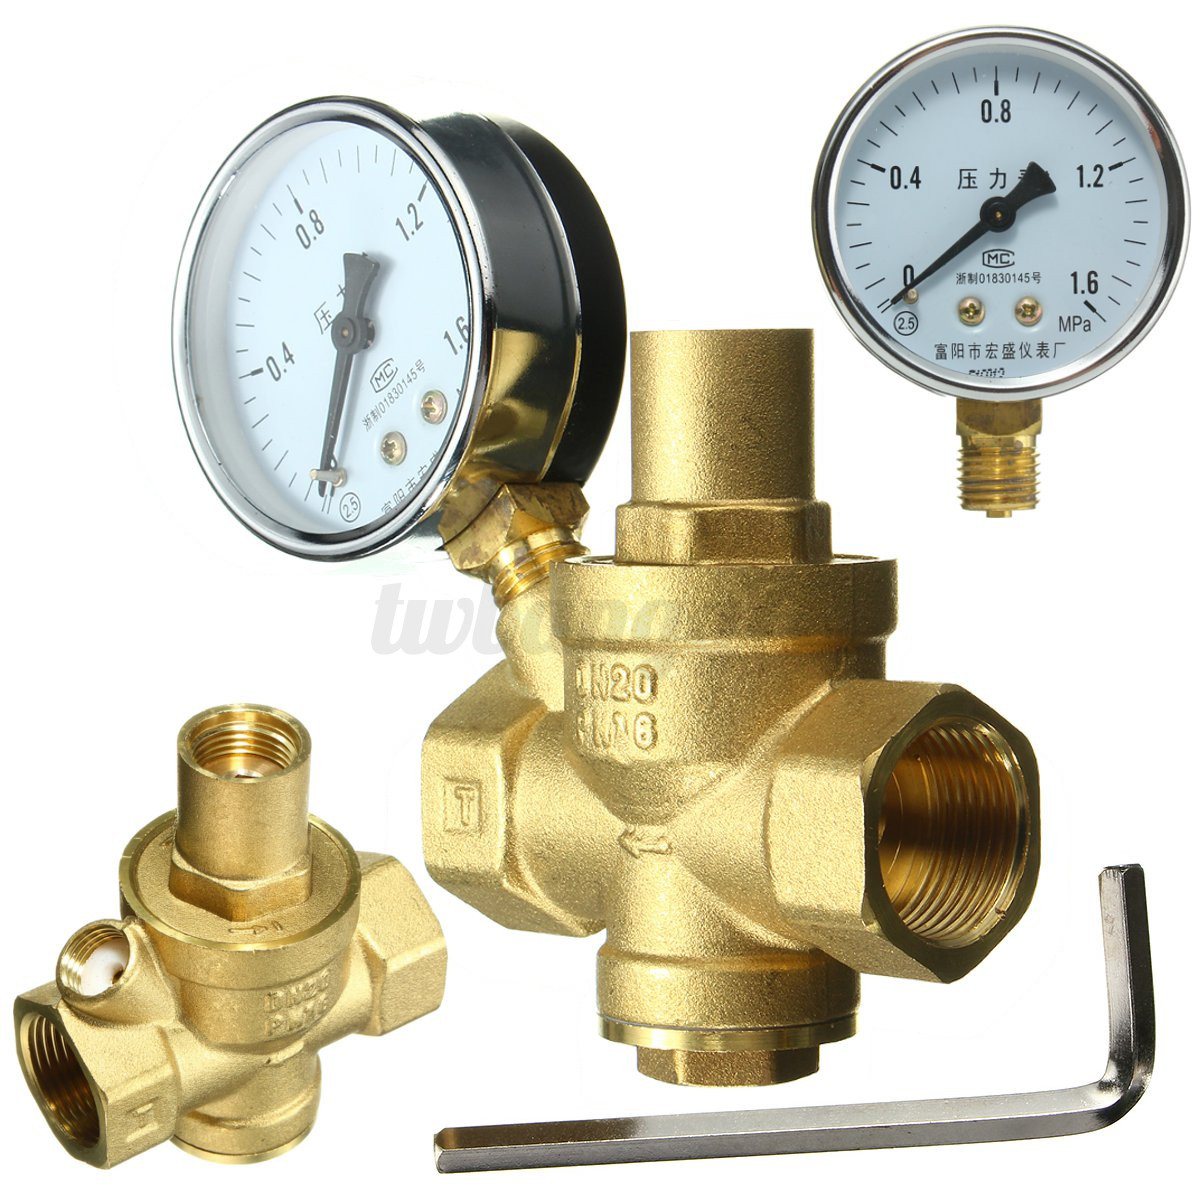 dn20 3 4 39 39 bspp brass water pressure reducing valve with gauge flow adjustable us. Black Bedroom Furniture Sets. Home Design Ideas